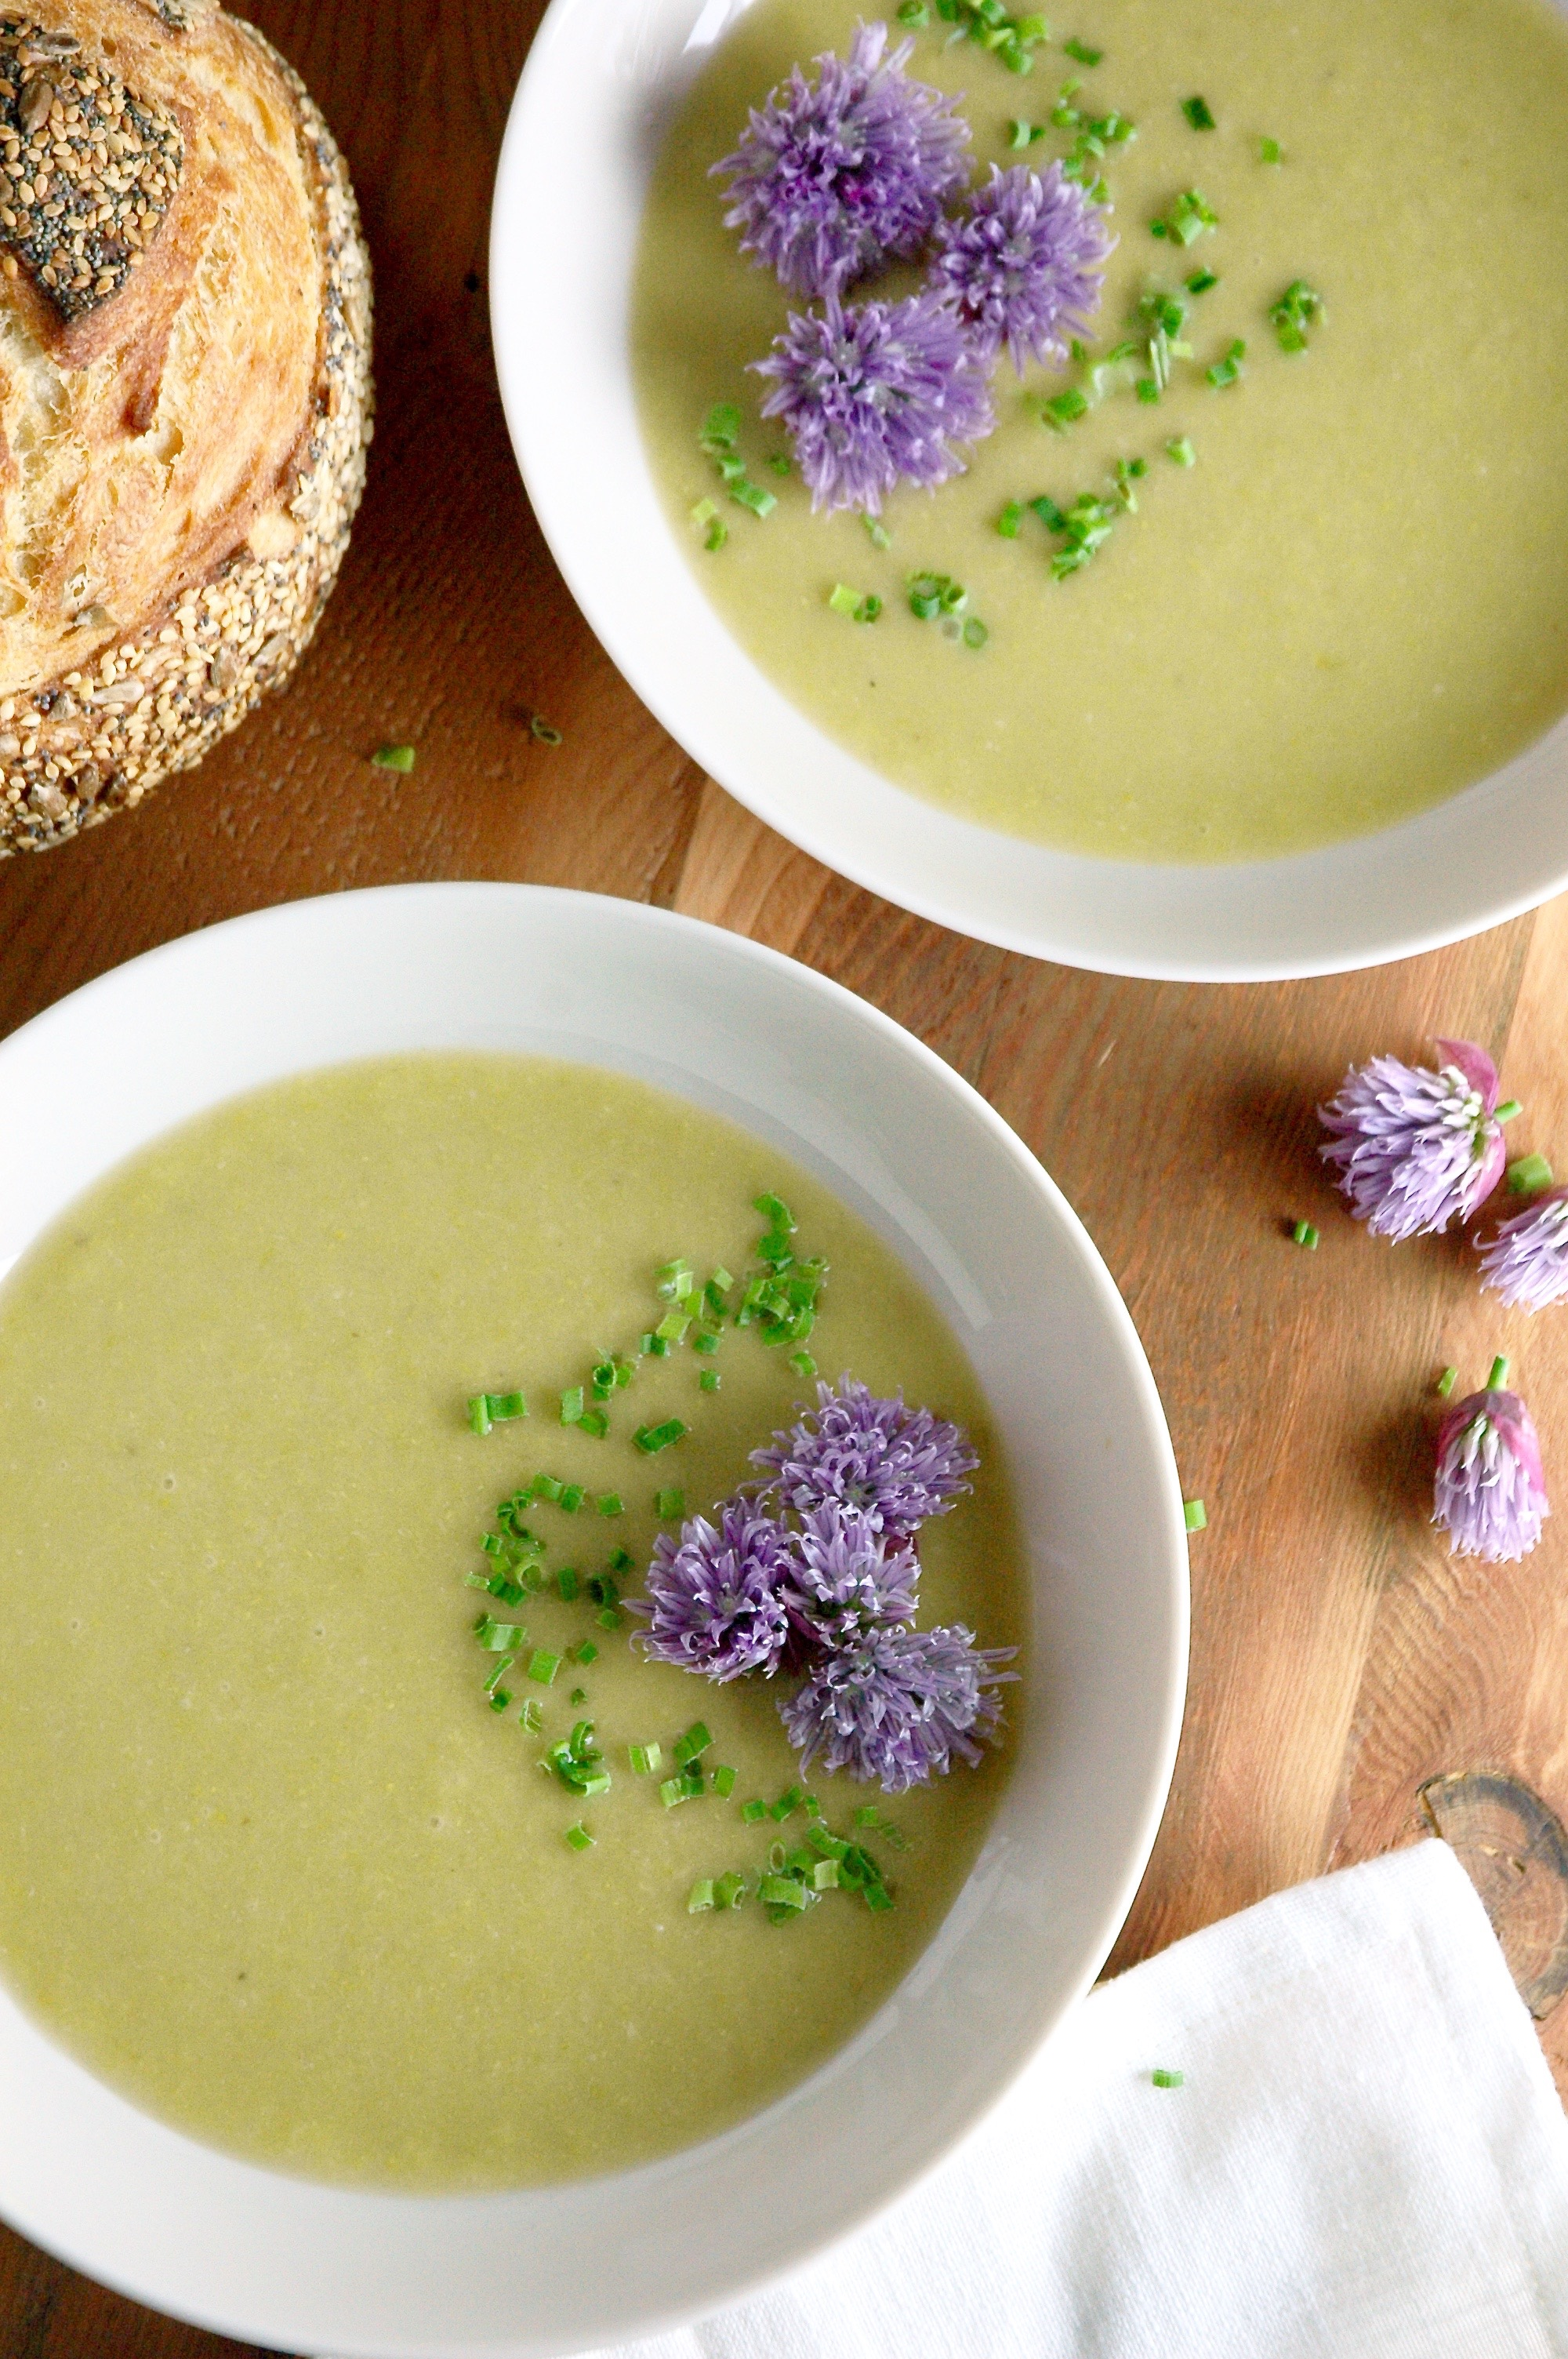 Creamy Asparagus Soup with Chive Flowers